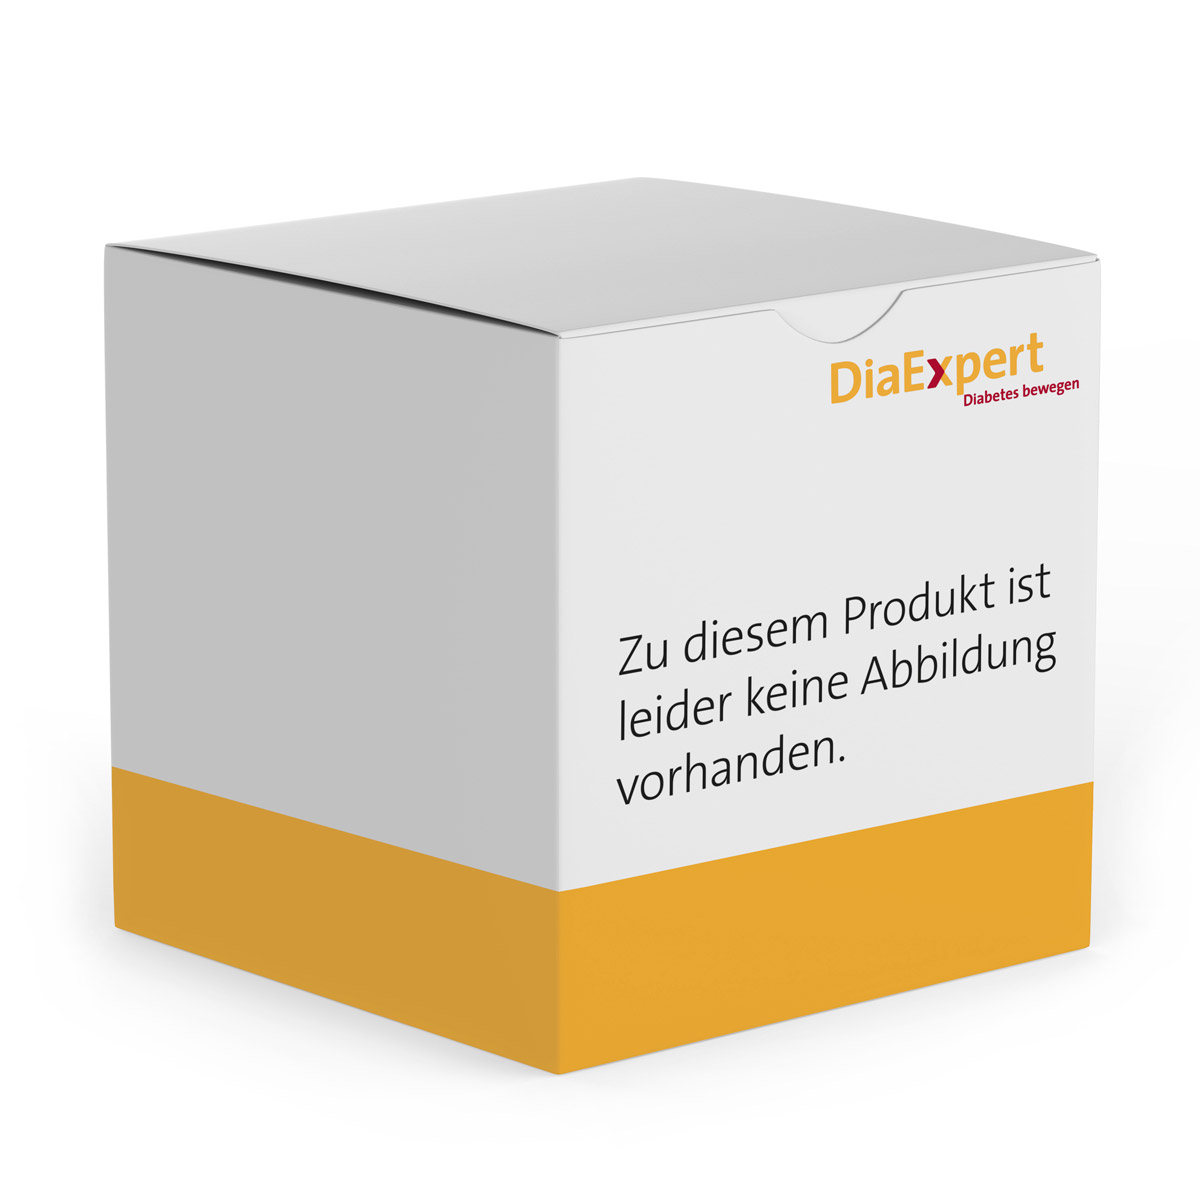 Medtrum A6 TouchCare CGM Transmitter in Verpackung